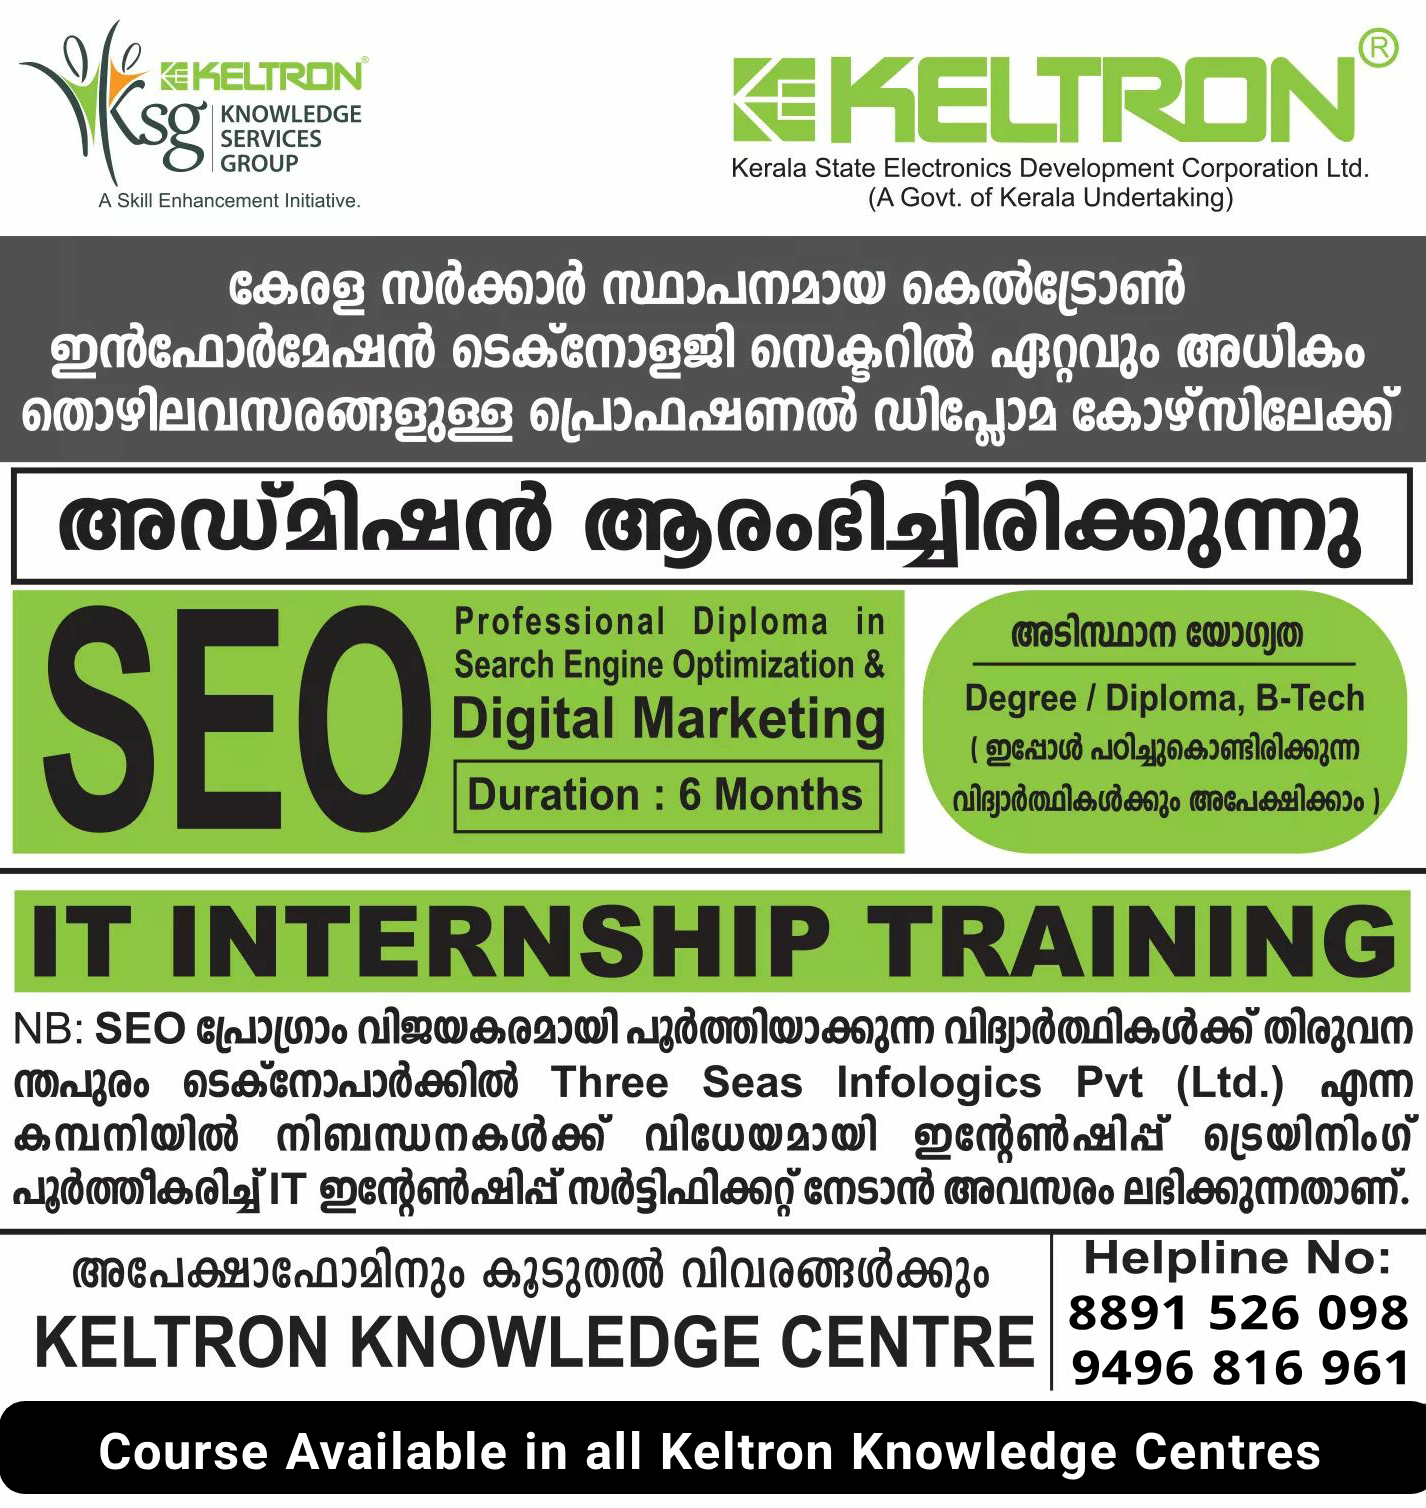 Keltron Certification Course On Digital Marketing and SEO